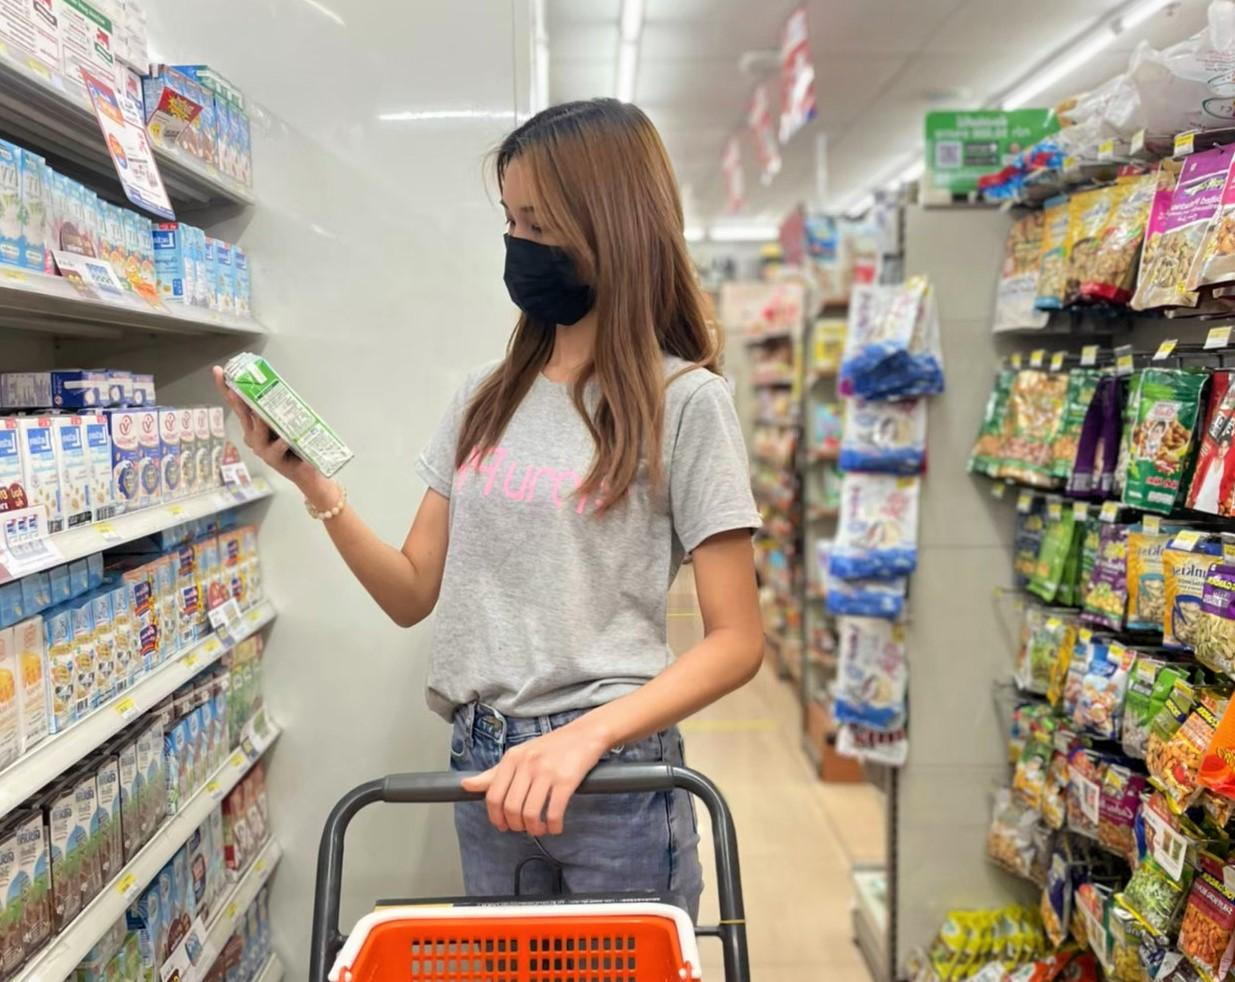 Thai consumers are worried about uncertain economic situations caused by the third wave of the pandemic.